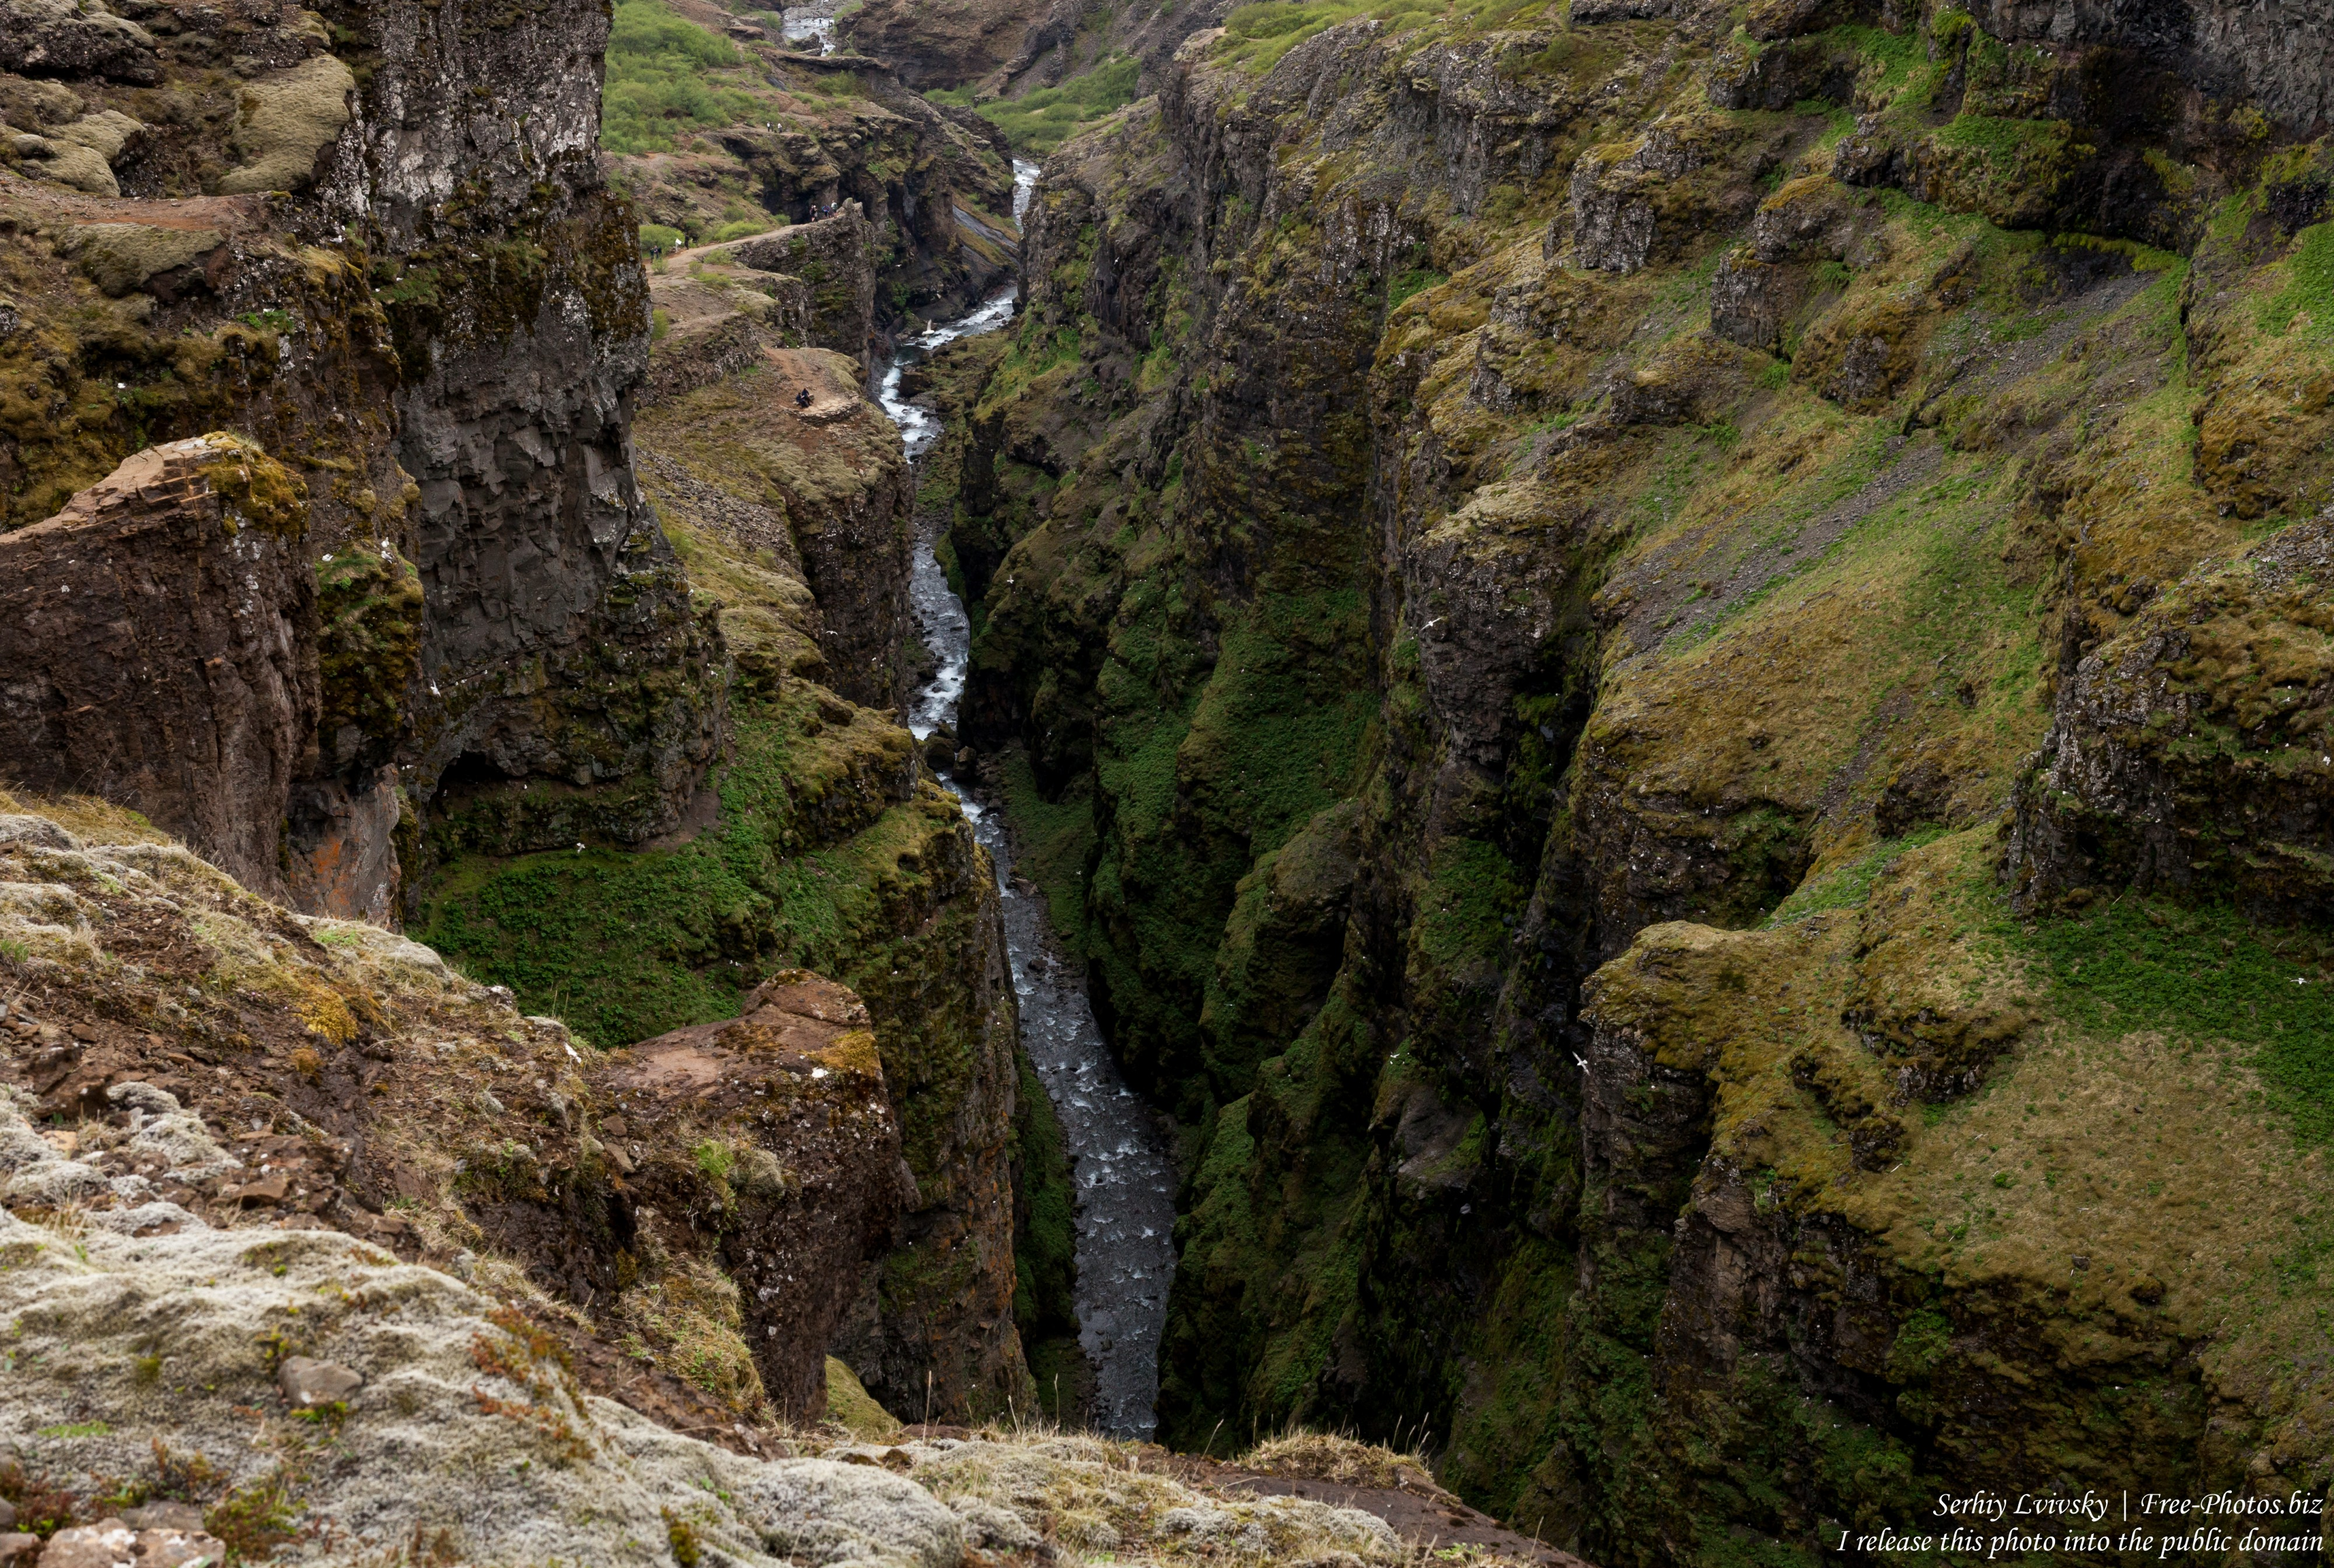 Glymur, Iceland, photographed in May 2019 by Serhiy Lvivsky, picture 7